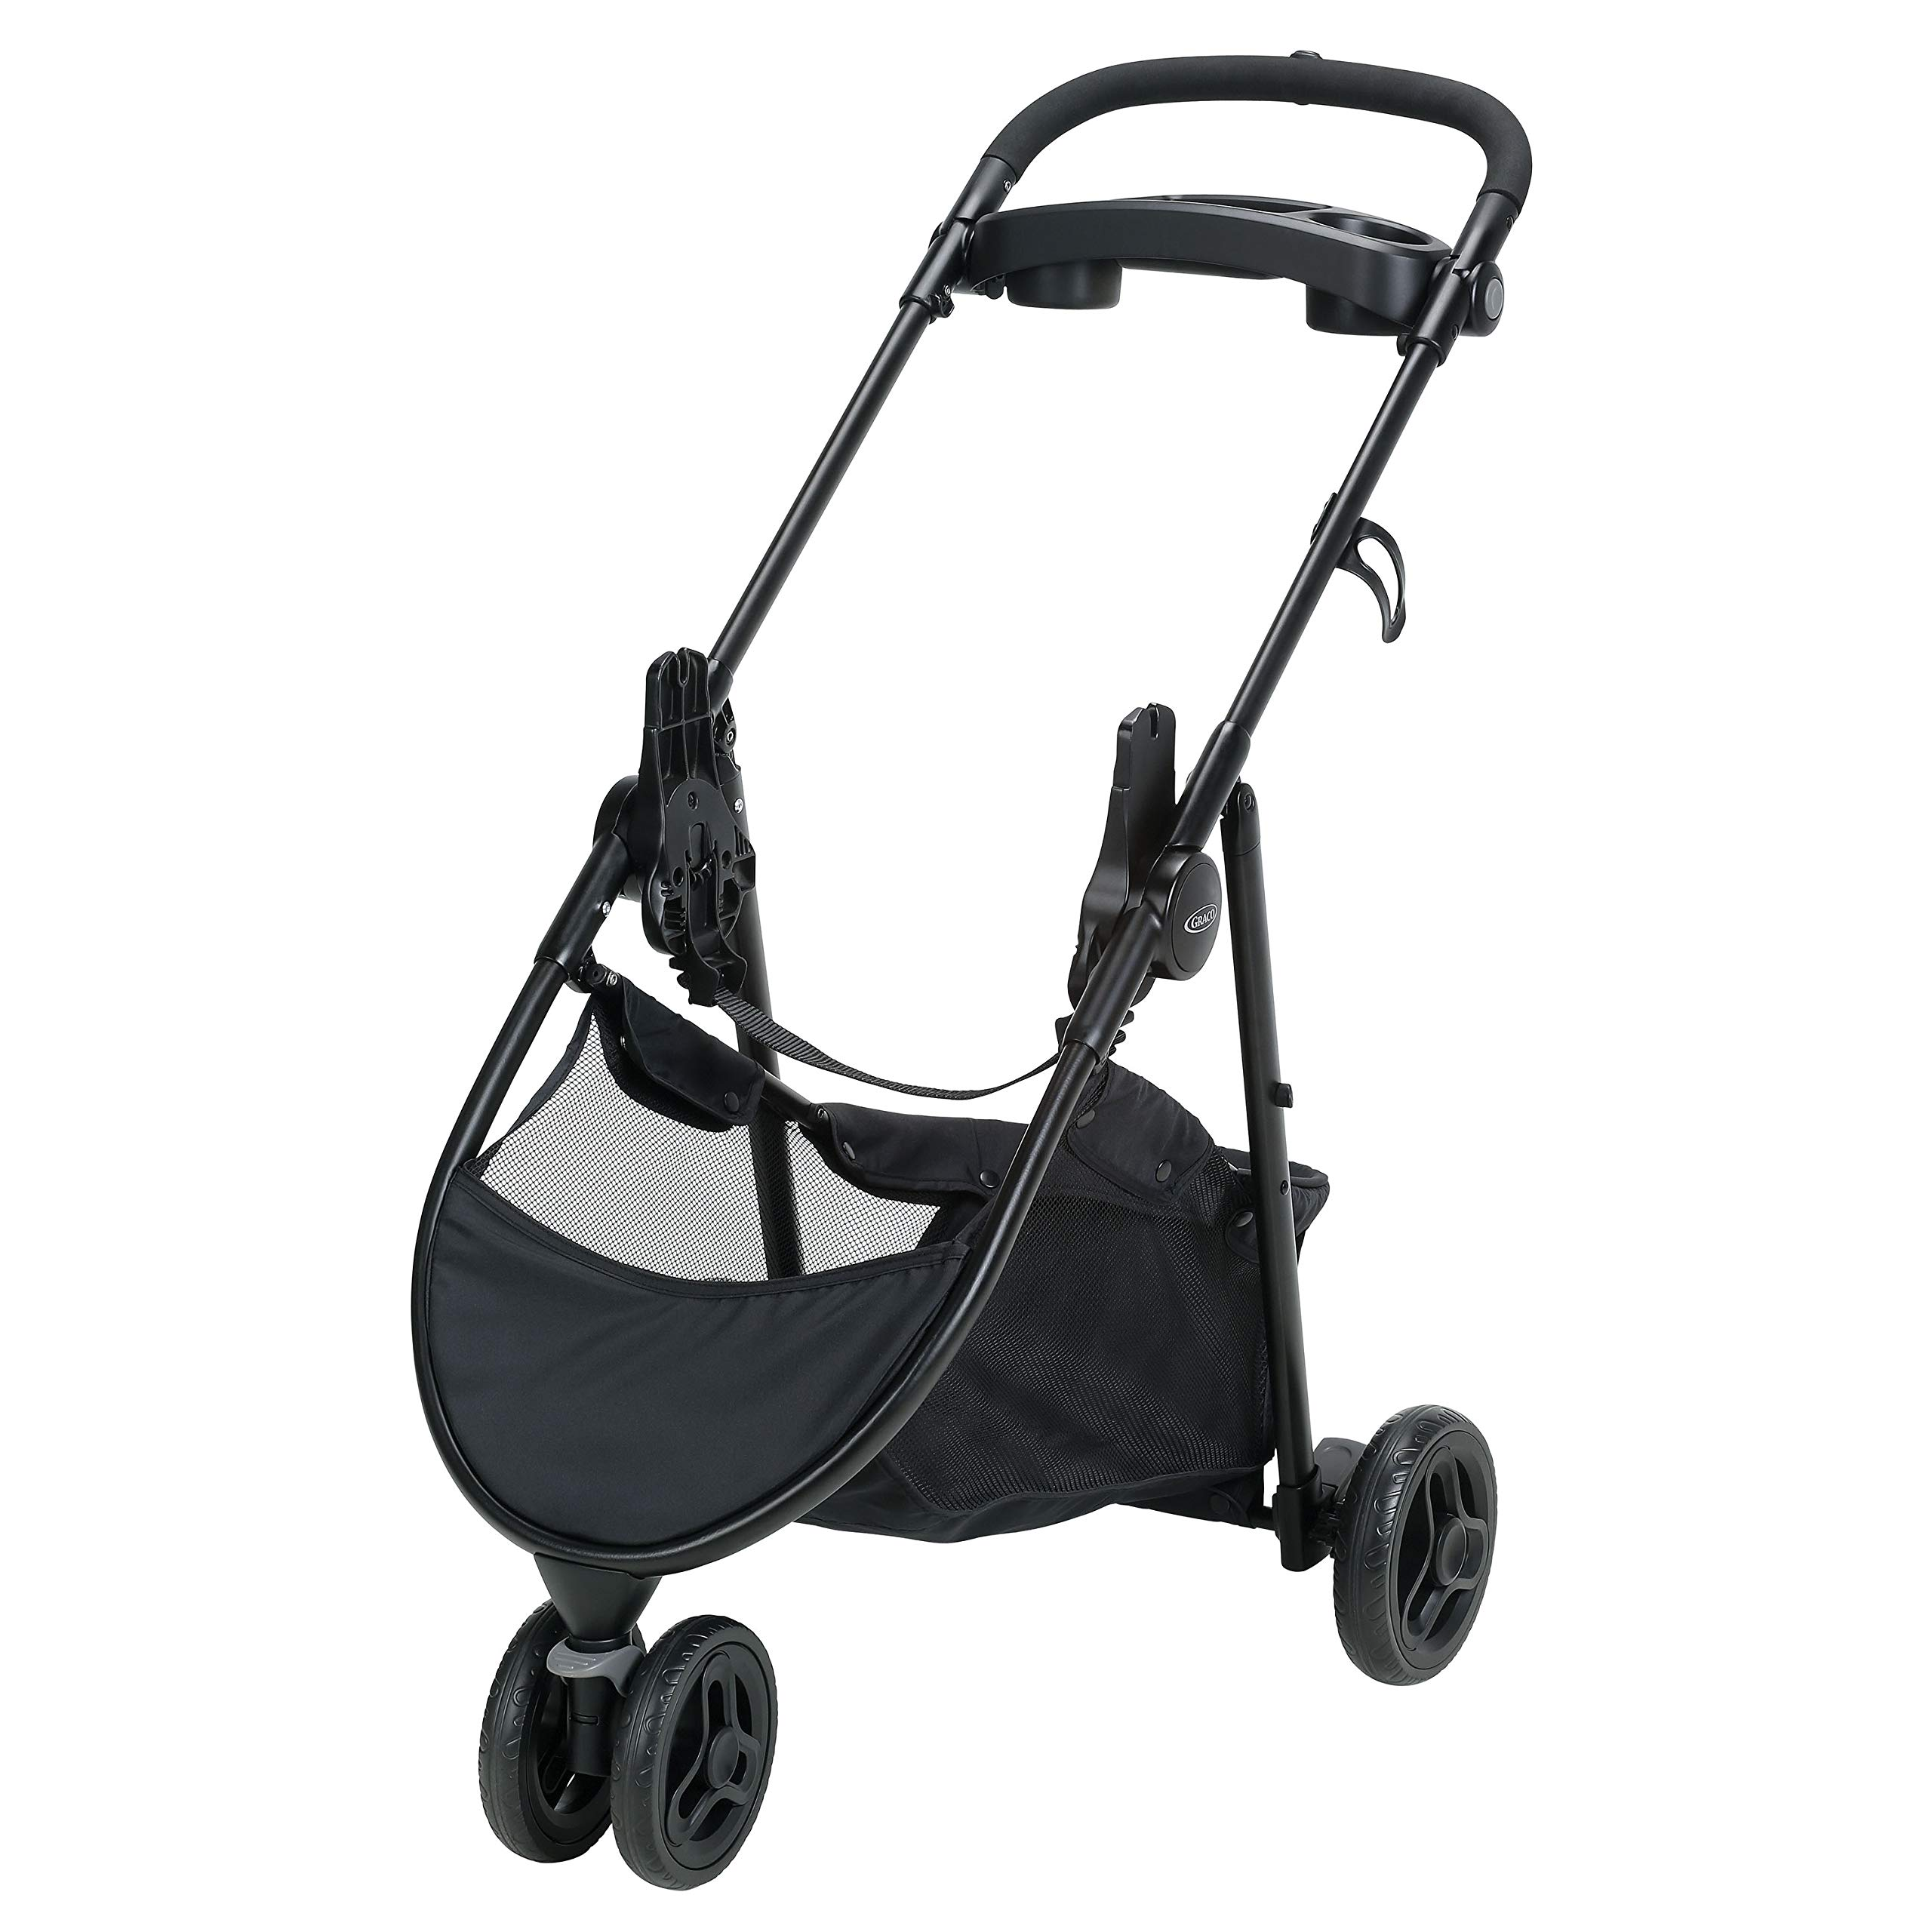 Graco SnugRider Carrier Lightweight Stroller